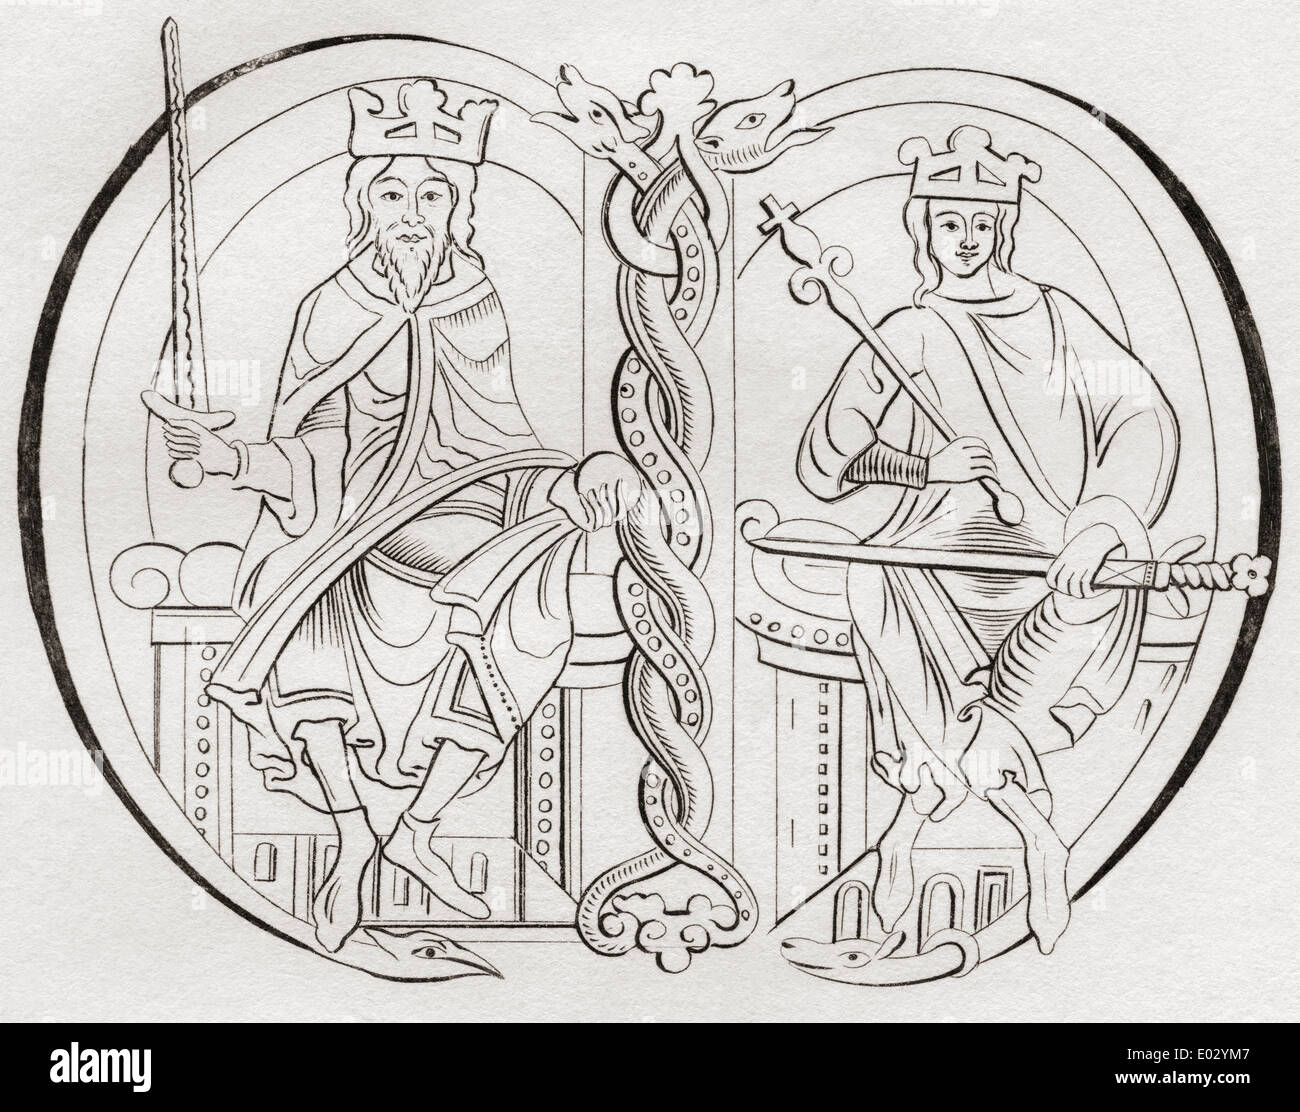 David I, left, 1084 –1153. Prince of the Cumbrians.  Malcolm IV, right. Both Kings of the Scots. - Stock Image